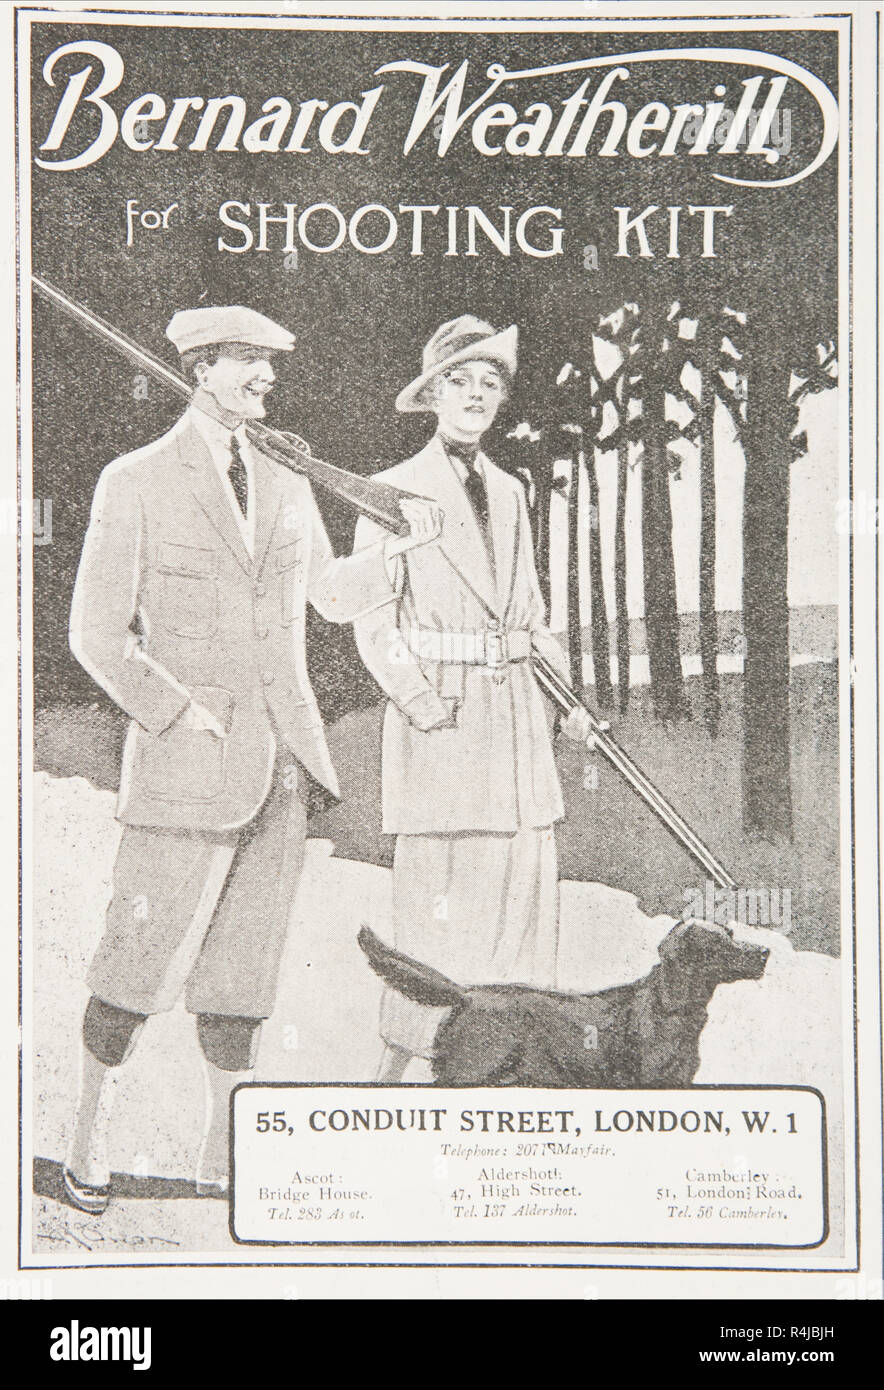 An old advert for Bernard Weatherill shooting kit. From an old British magazine from the 1914-1919 period. - Stock Image